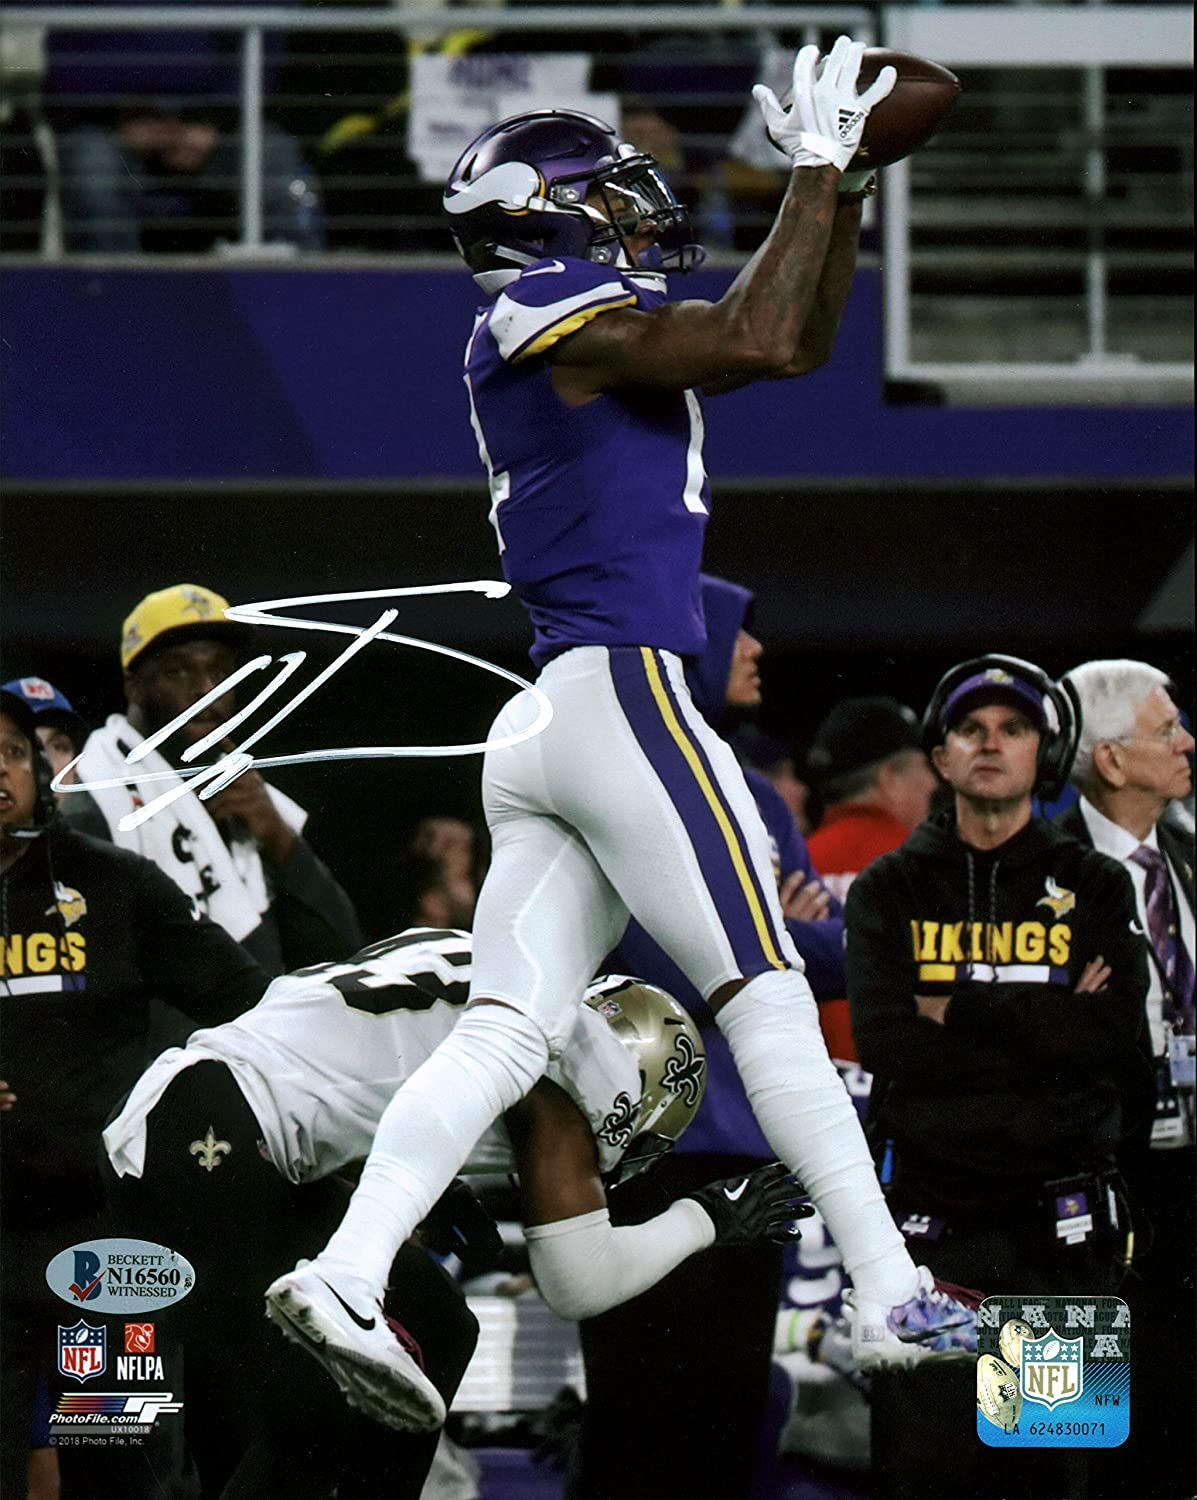 Vikings Stefon Diggs Authentic Signed 8x10 Minnesota Miracle Photo BAS Witnessed